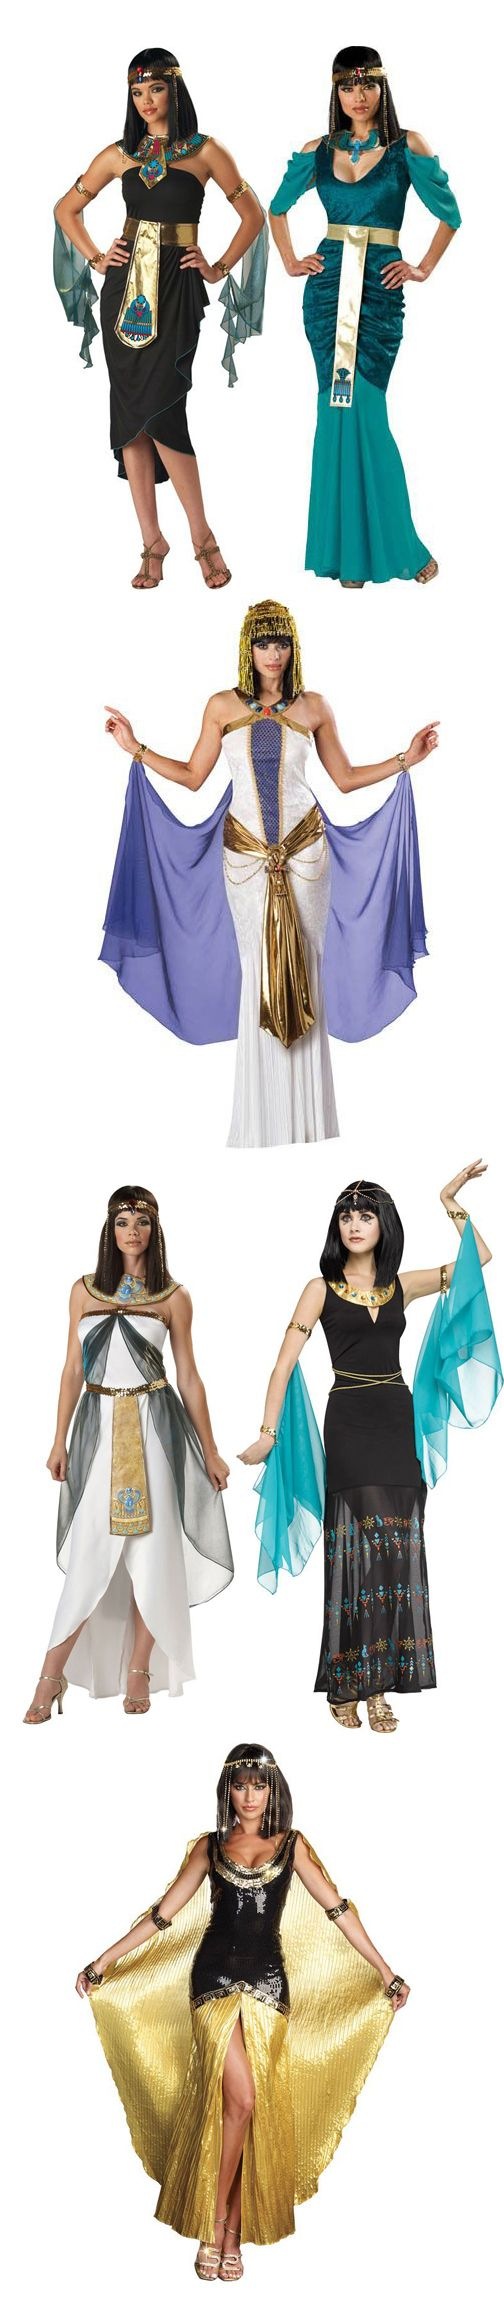 35 totally doable DIY Halloween costumes for women - as stylish as they are simple!